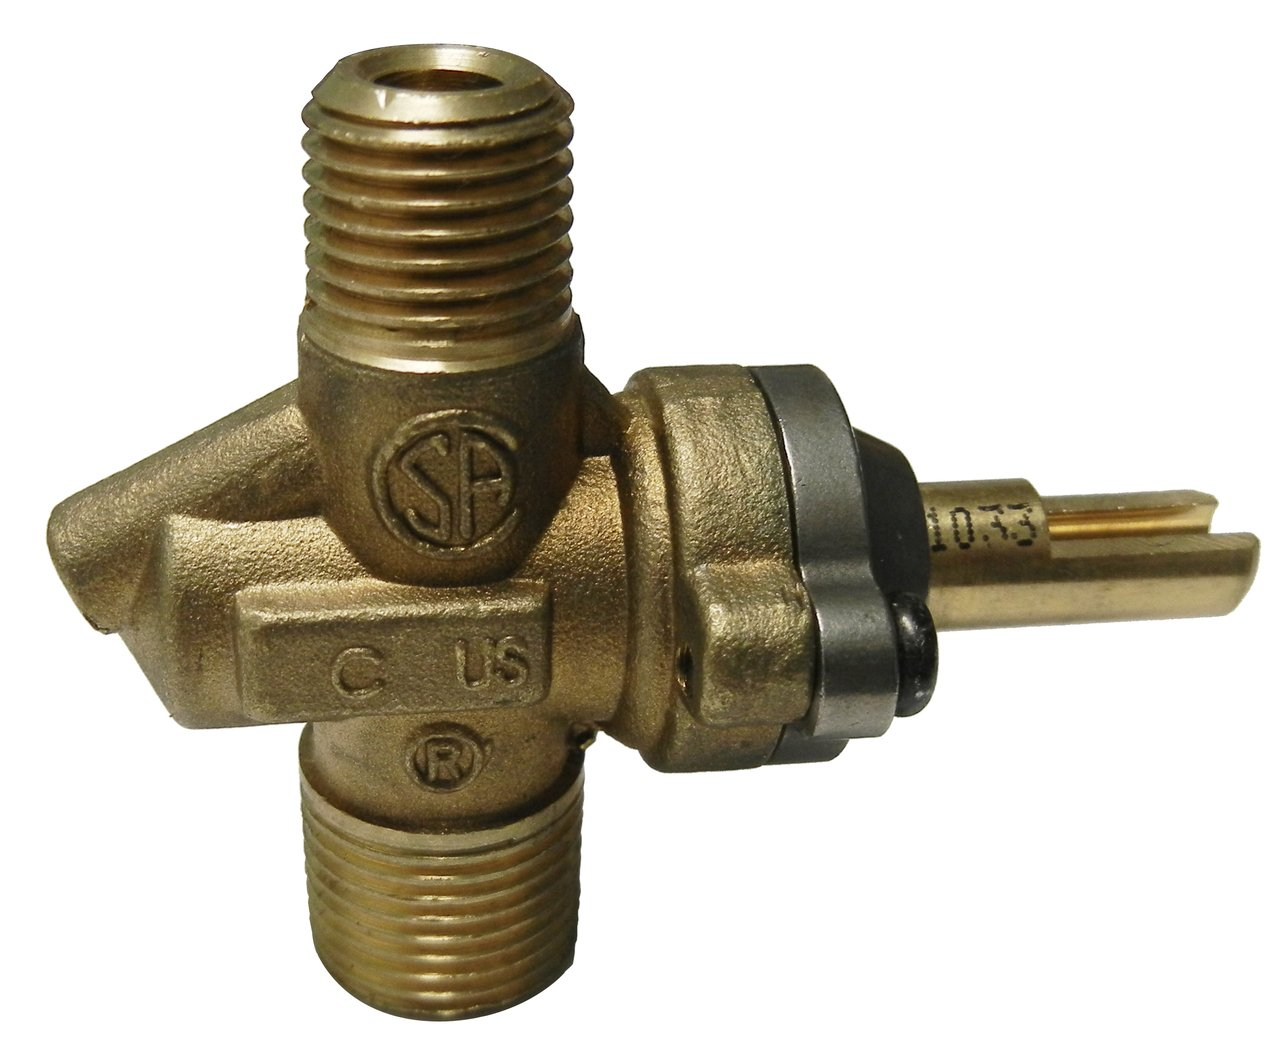 AOG, Fire Magic 8mm Diameter Gas Valve